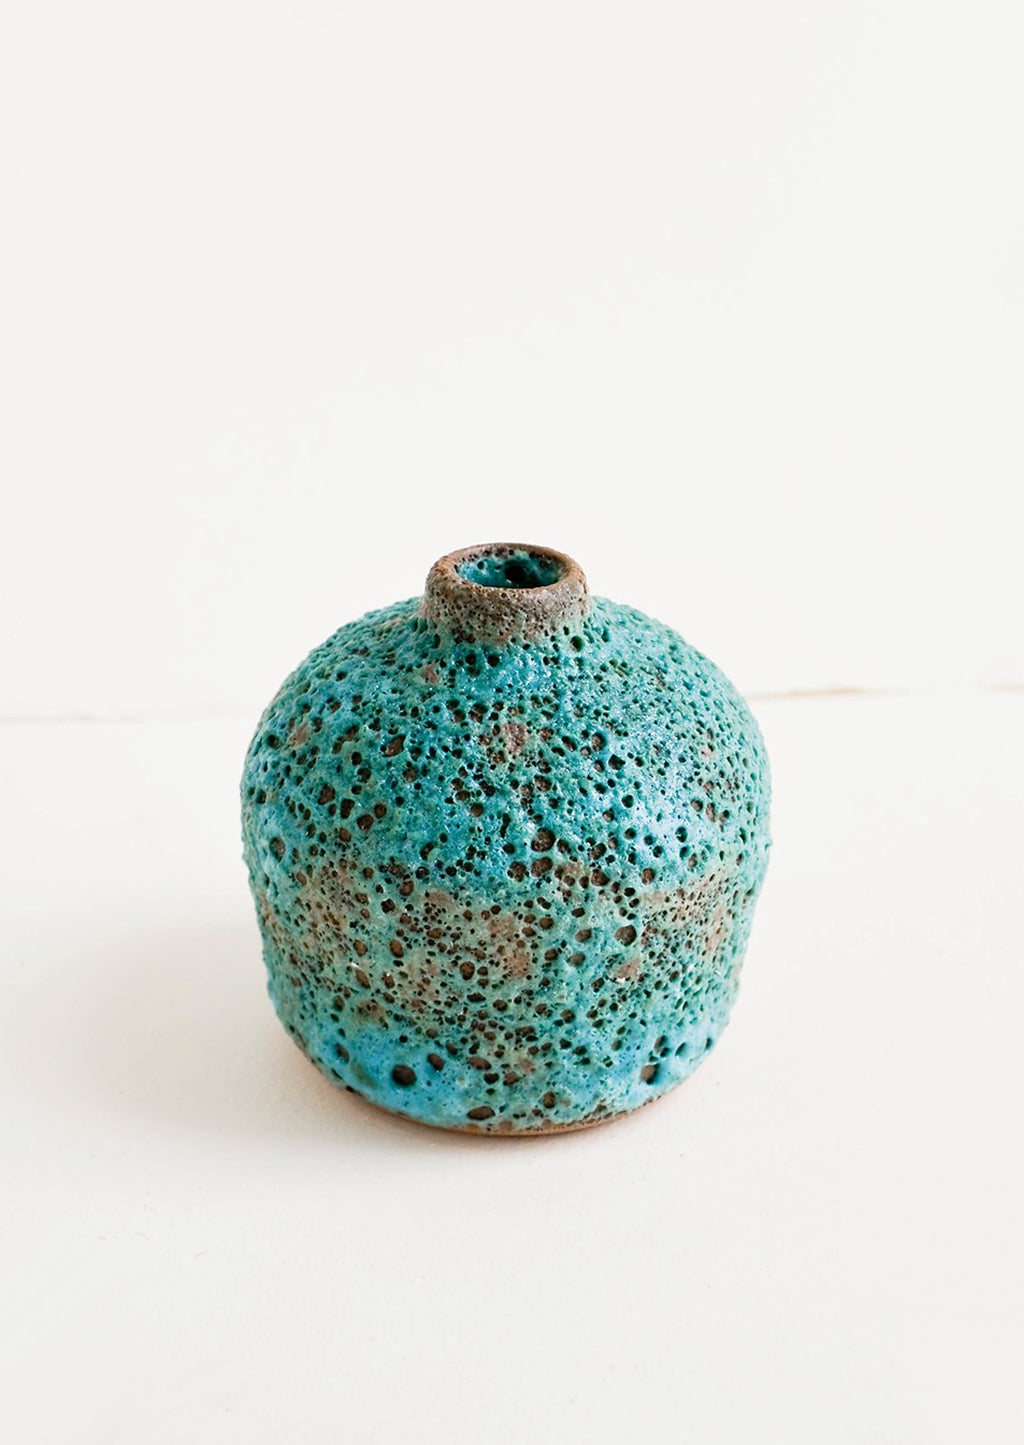 Bud Vase: Short bud vase in heavily textured turquoise glaze